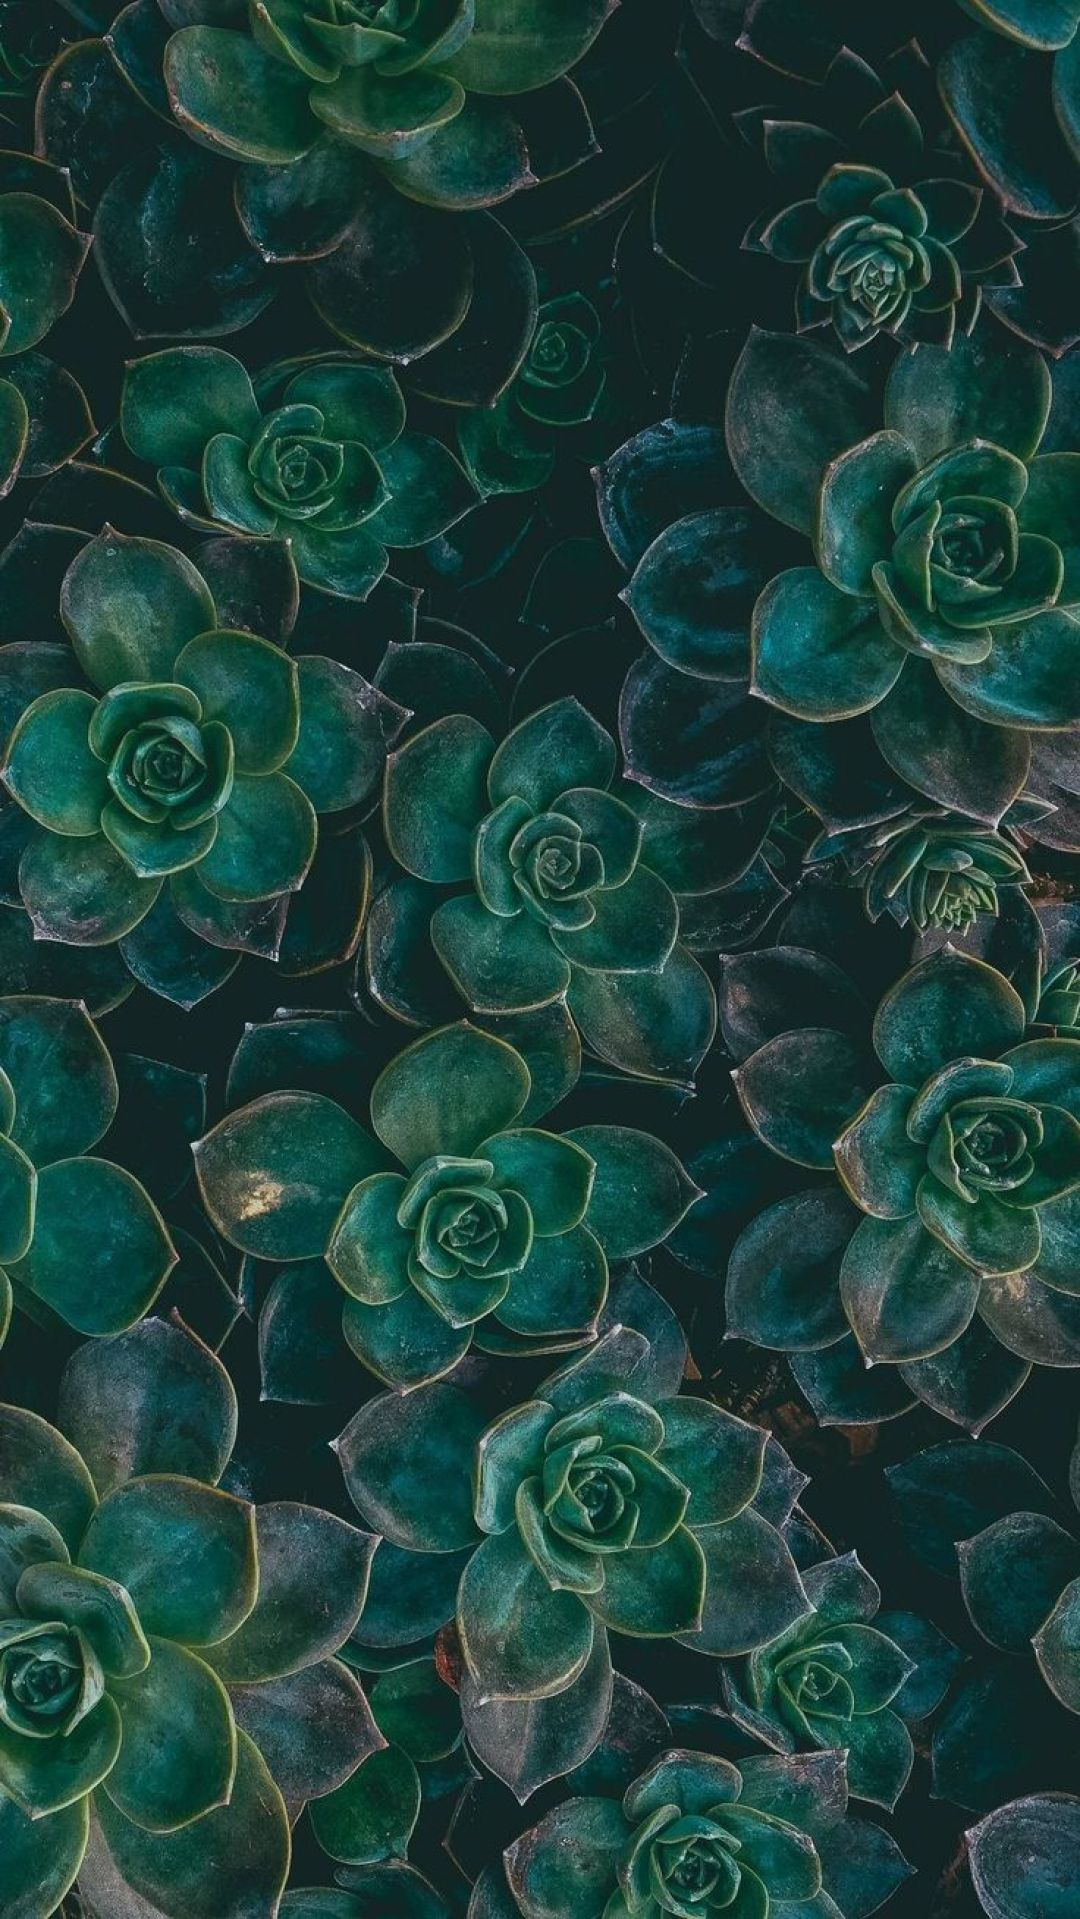 Download nature green aesthetic background for desktop or mobile device. 75+ Green Aesthetic Tumblr - Android, iPhone, Desktop HD ...